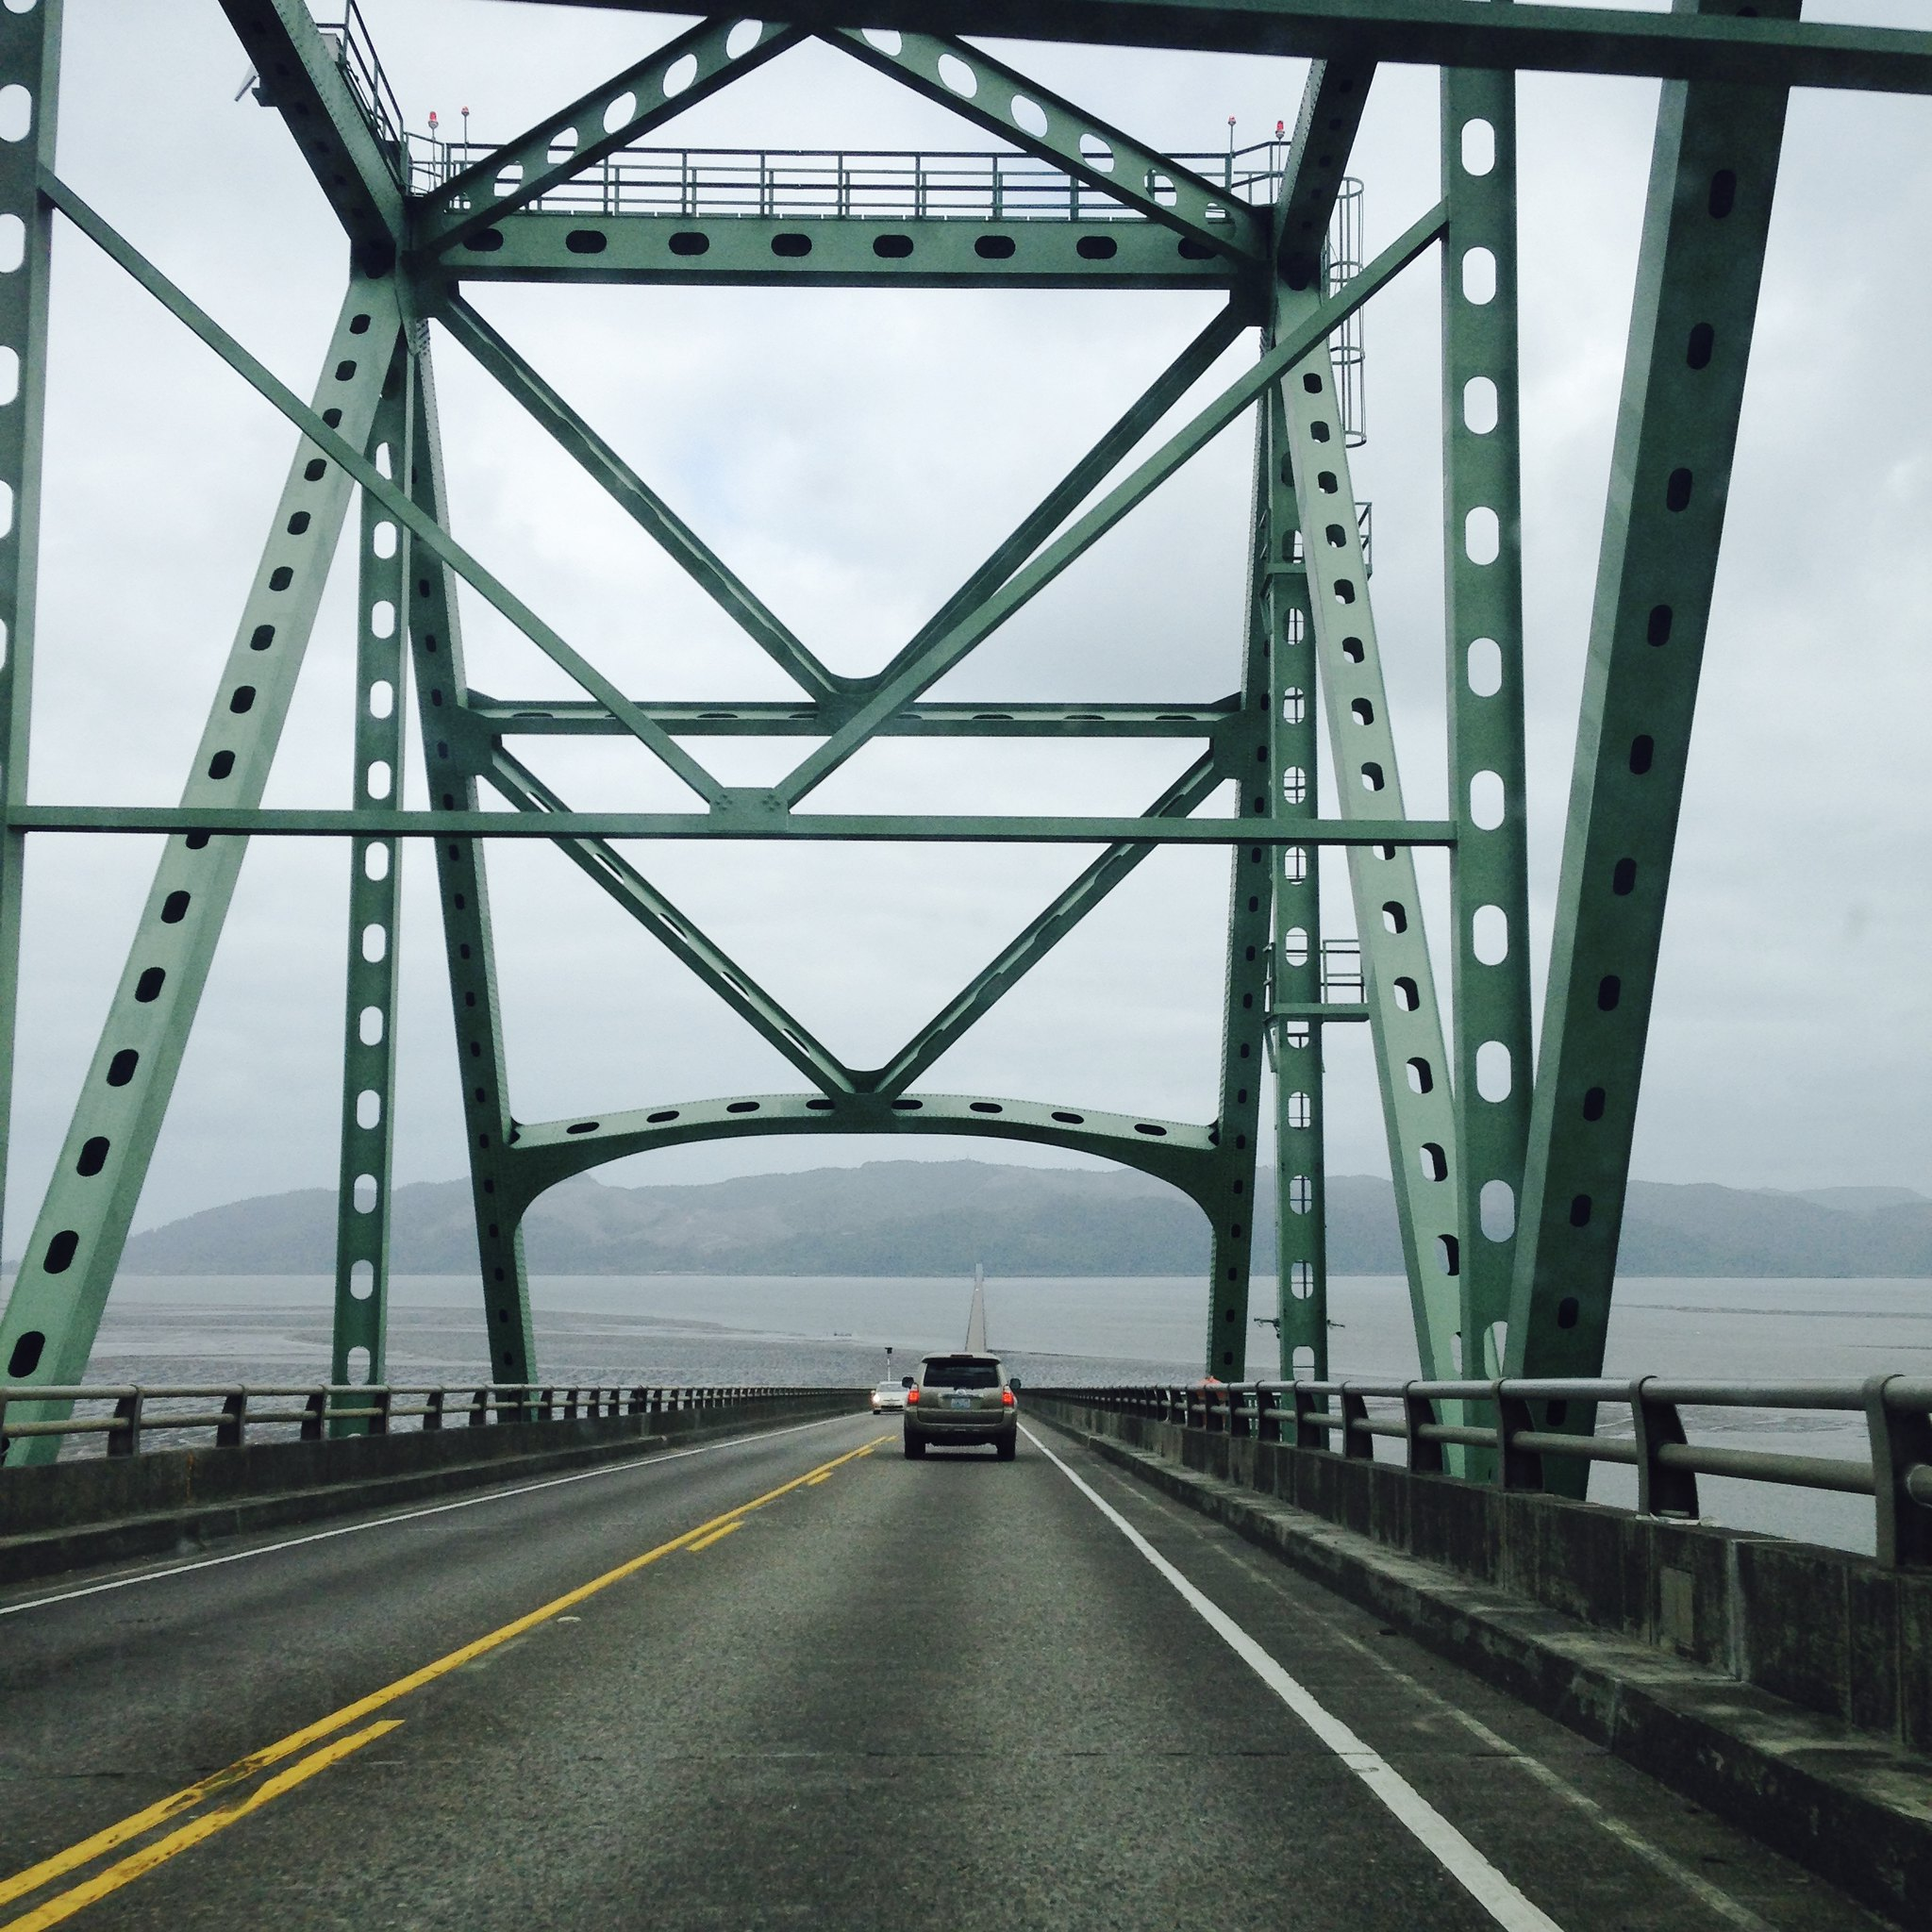 Crossing into Washington State